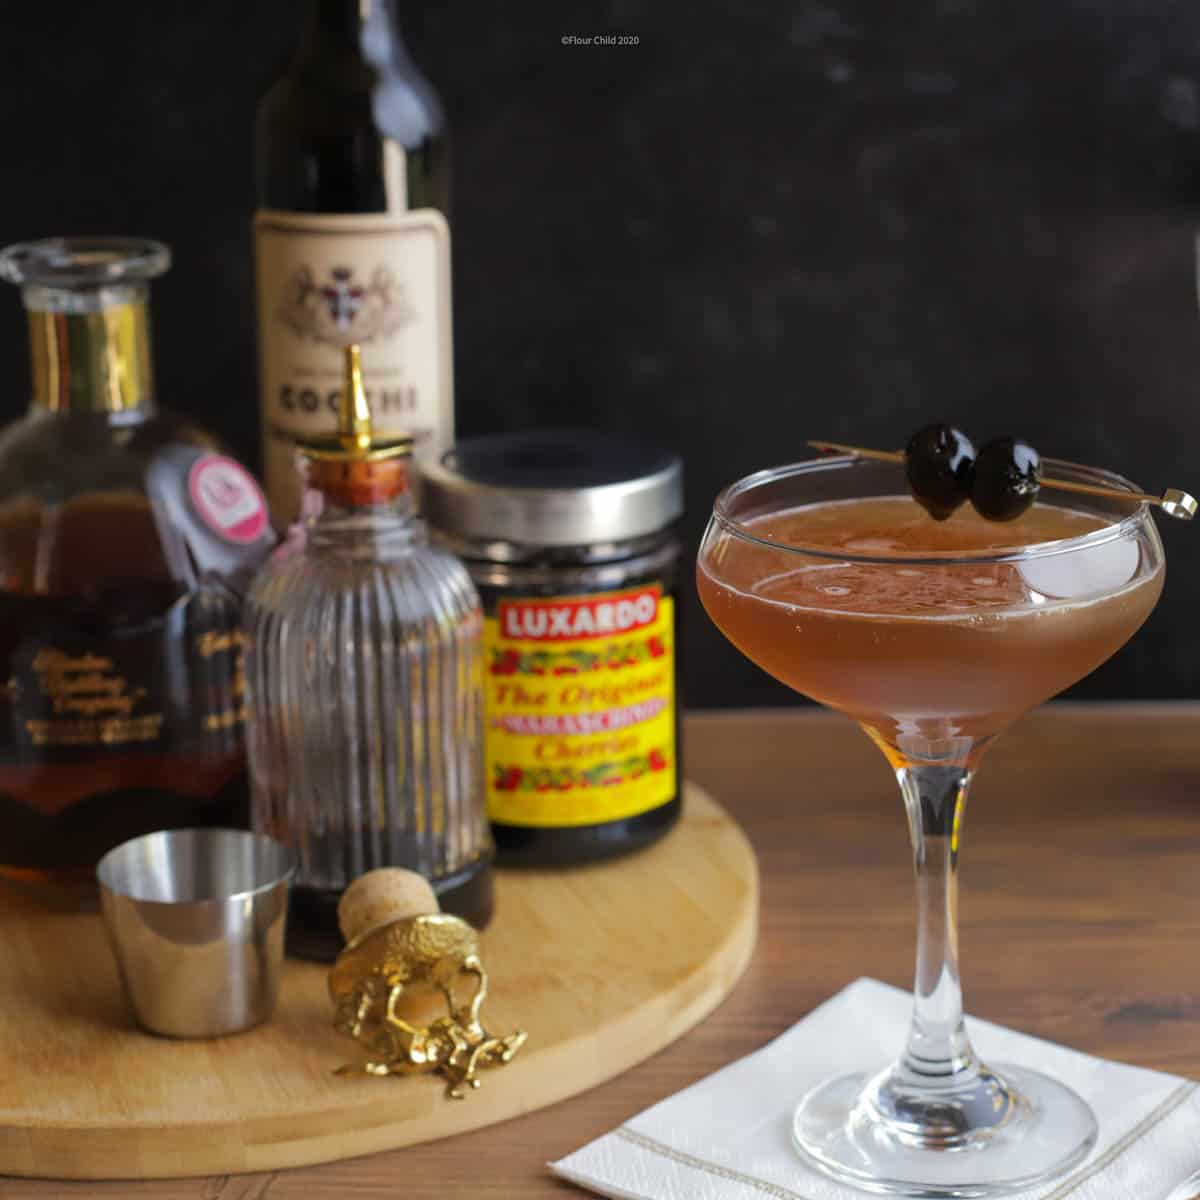 The Manhattan cocktail is a smooth classic made with bourbon, vermouth and bitters. A Luxardo cherry or two on a cocktail spike served in a coupe glass oozes sophistication.